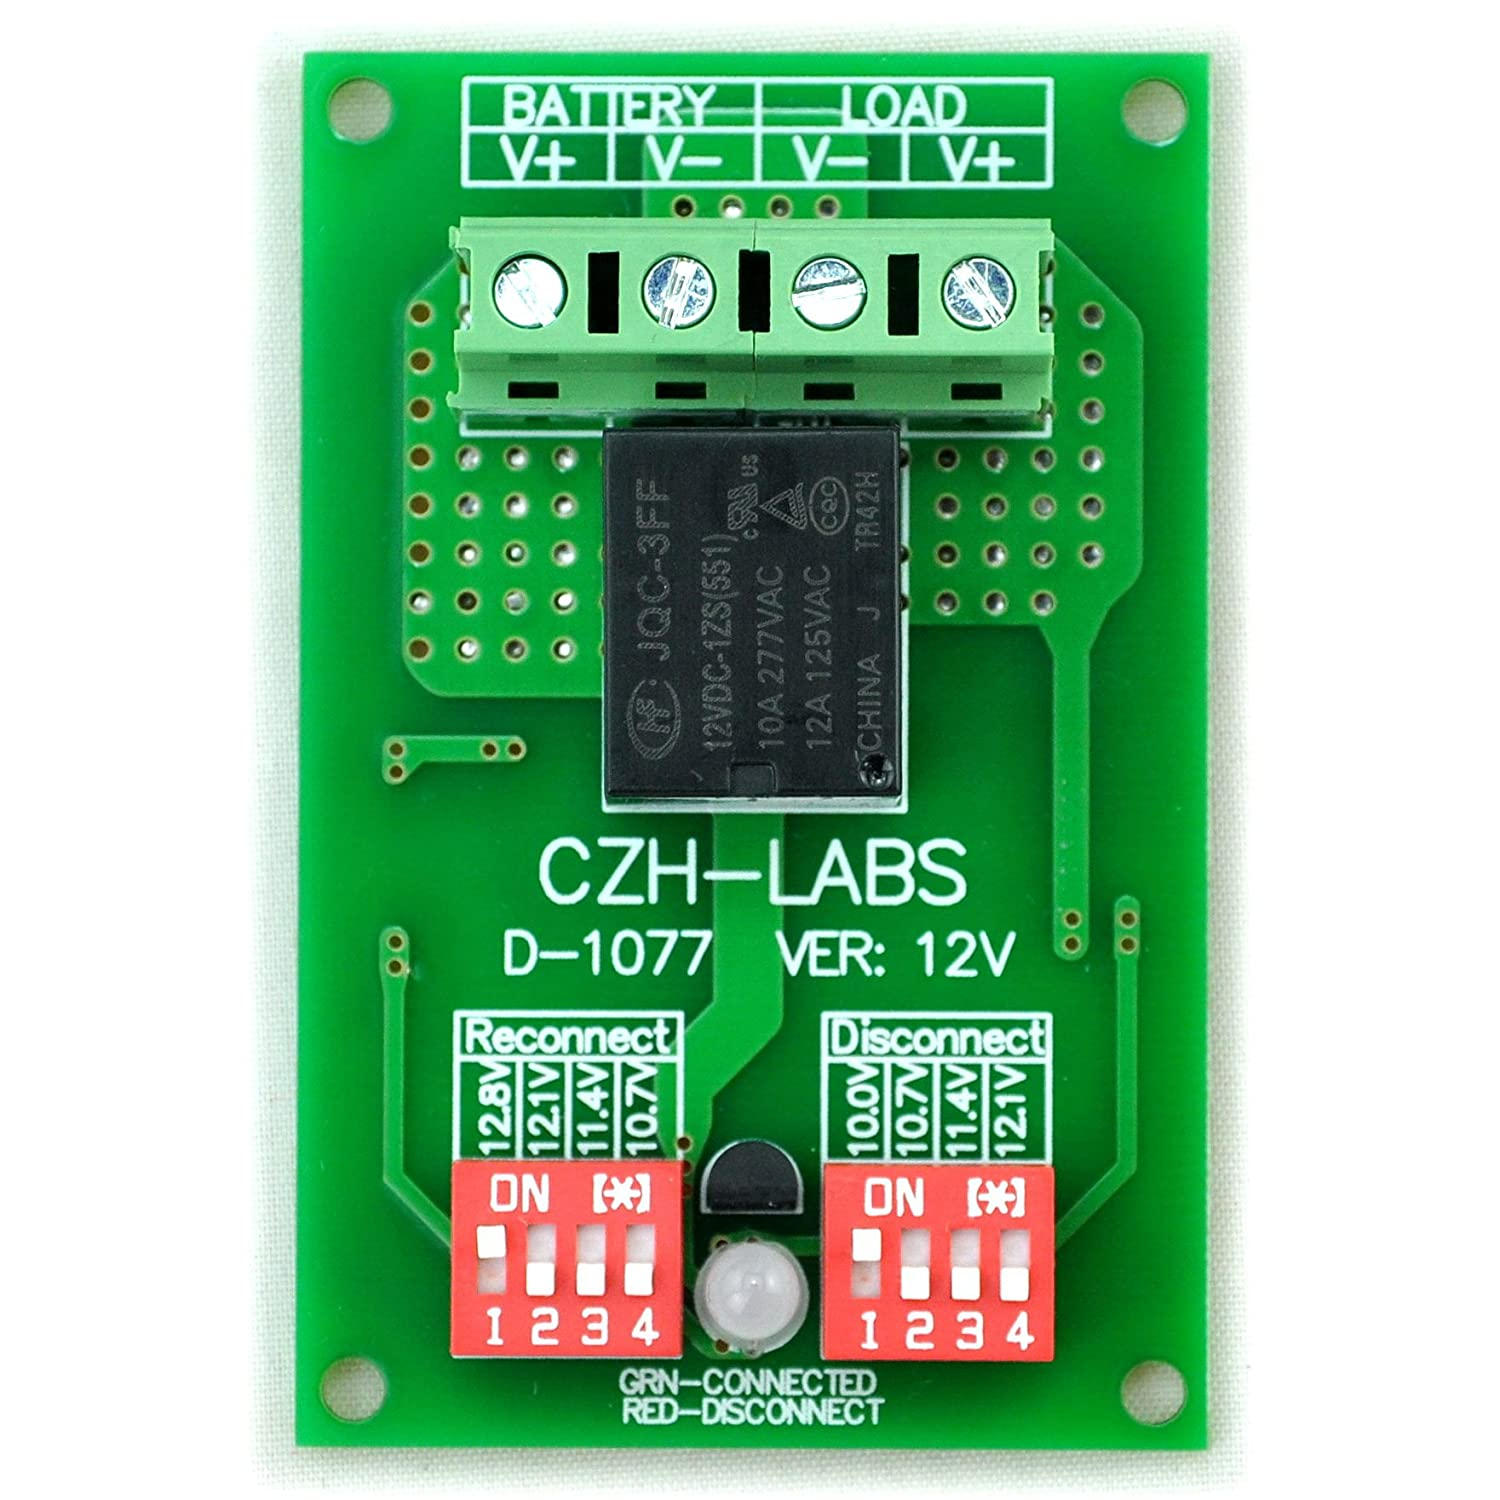 Low Battery Voltage Cutout Circuits